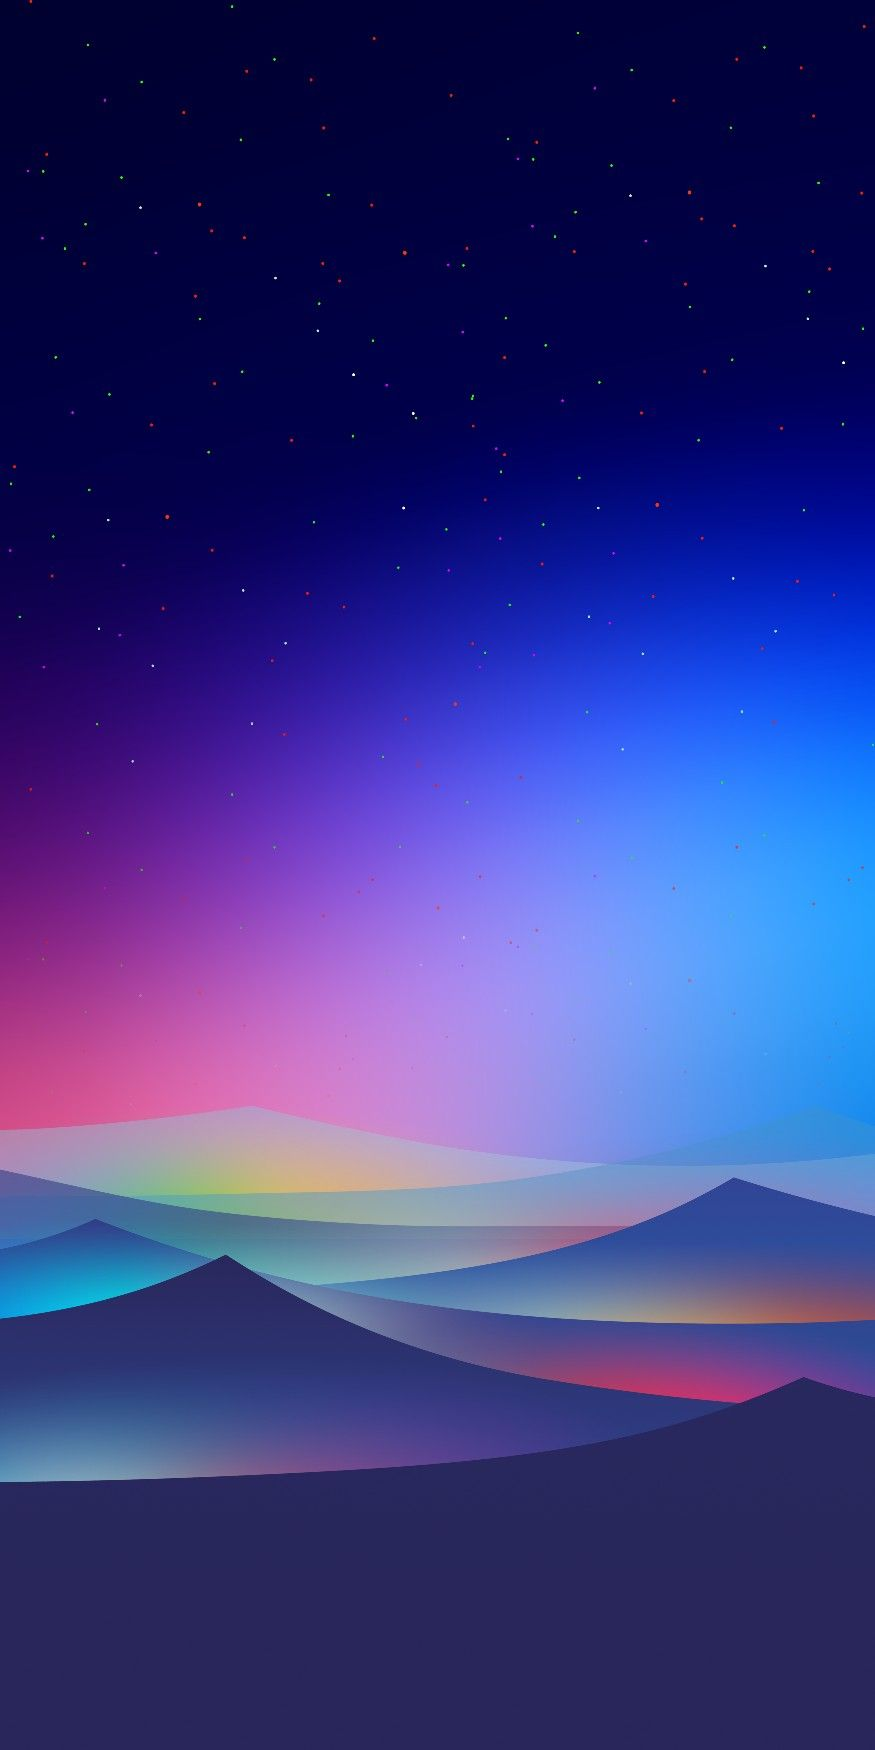 List of Top Scenery Phone Wallpaper HD Today by Uploaded by user